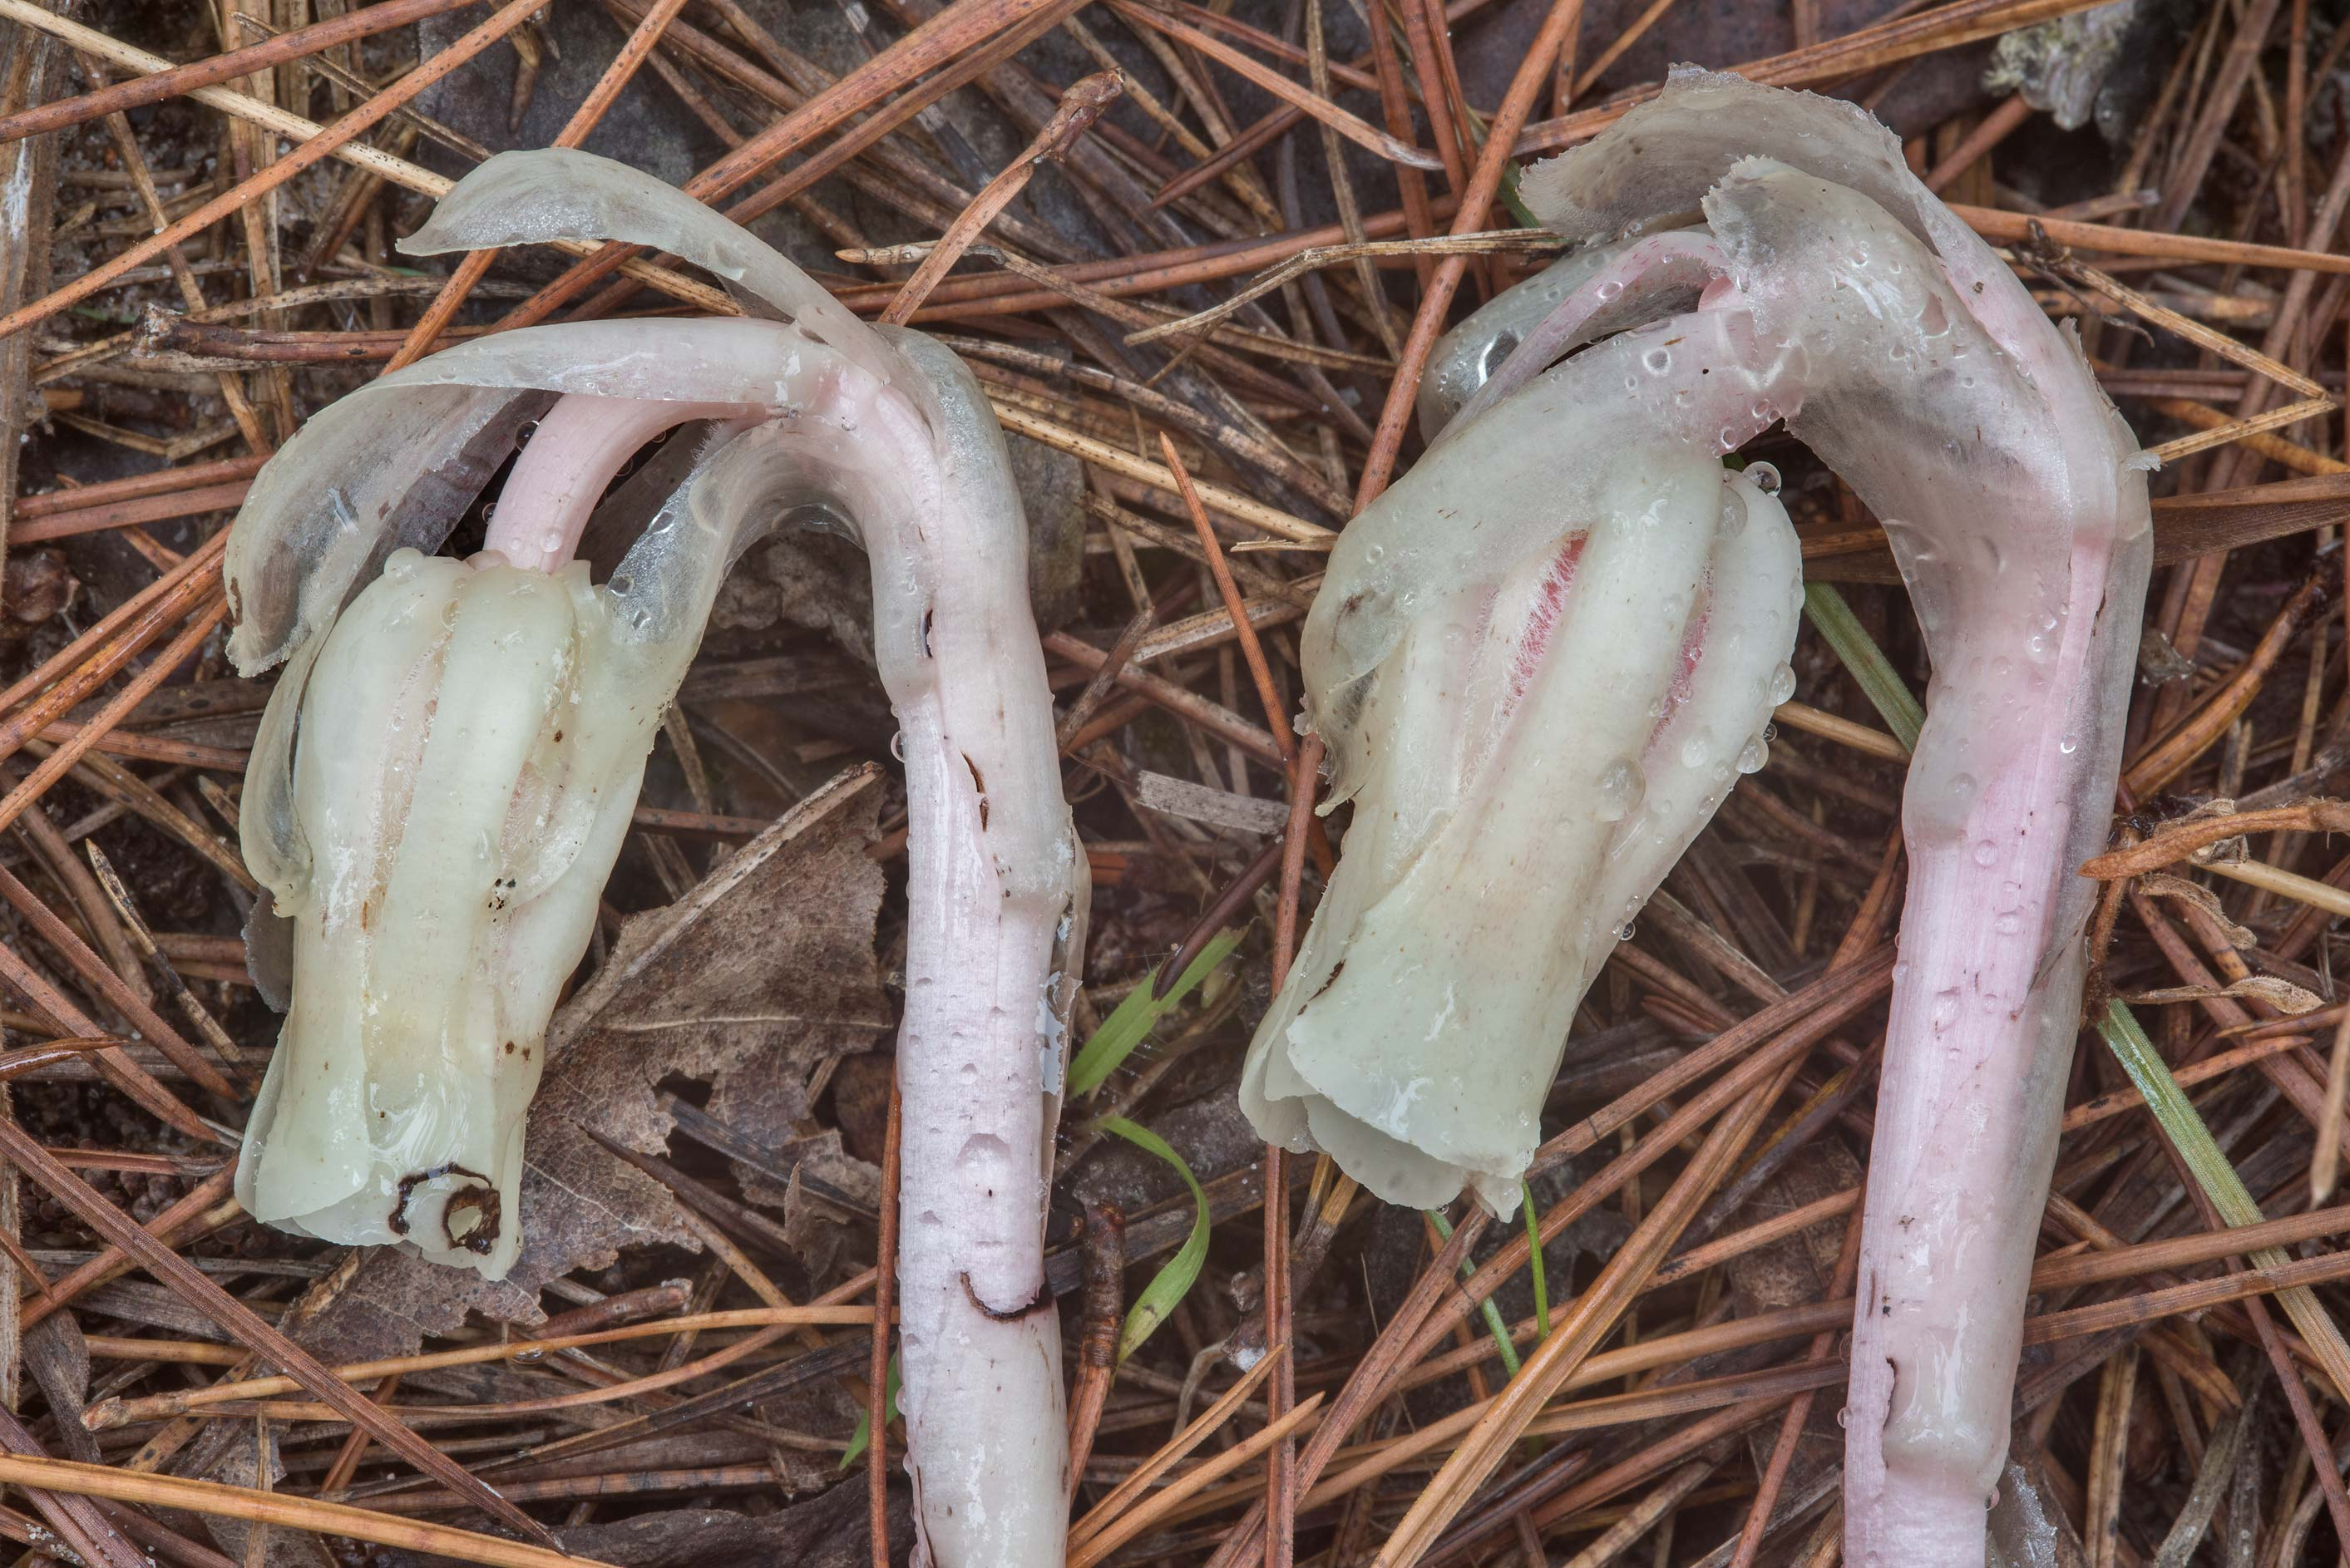 Indian pipe plants (Monotropa uniflora) on Little...National Forest. Richards, Texas